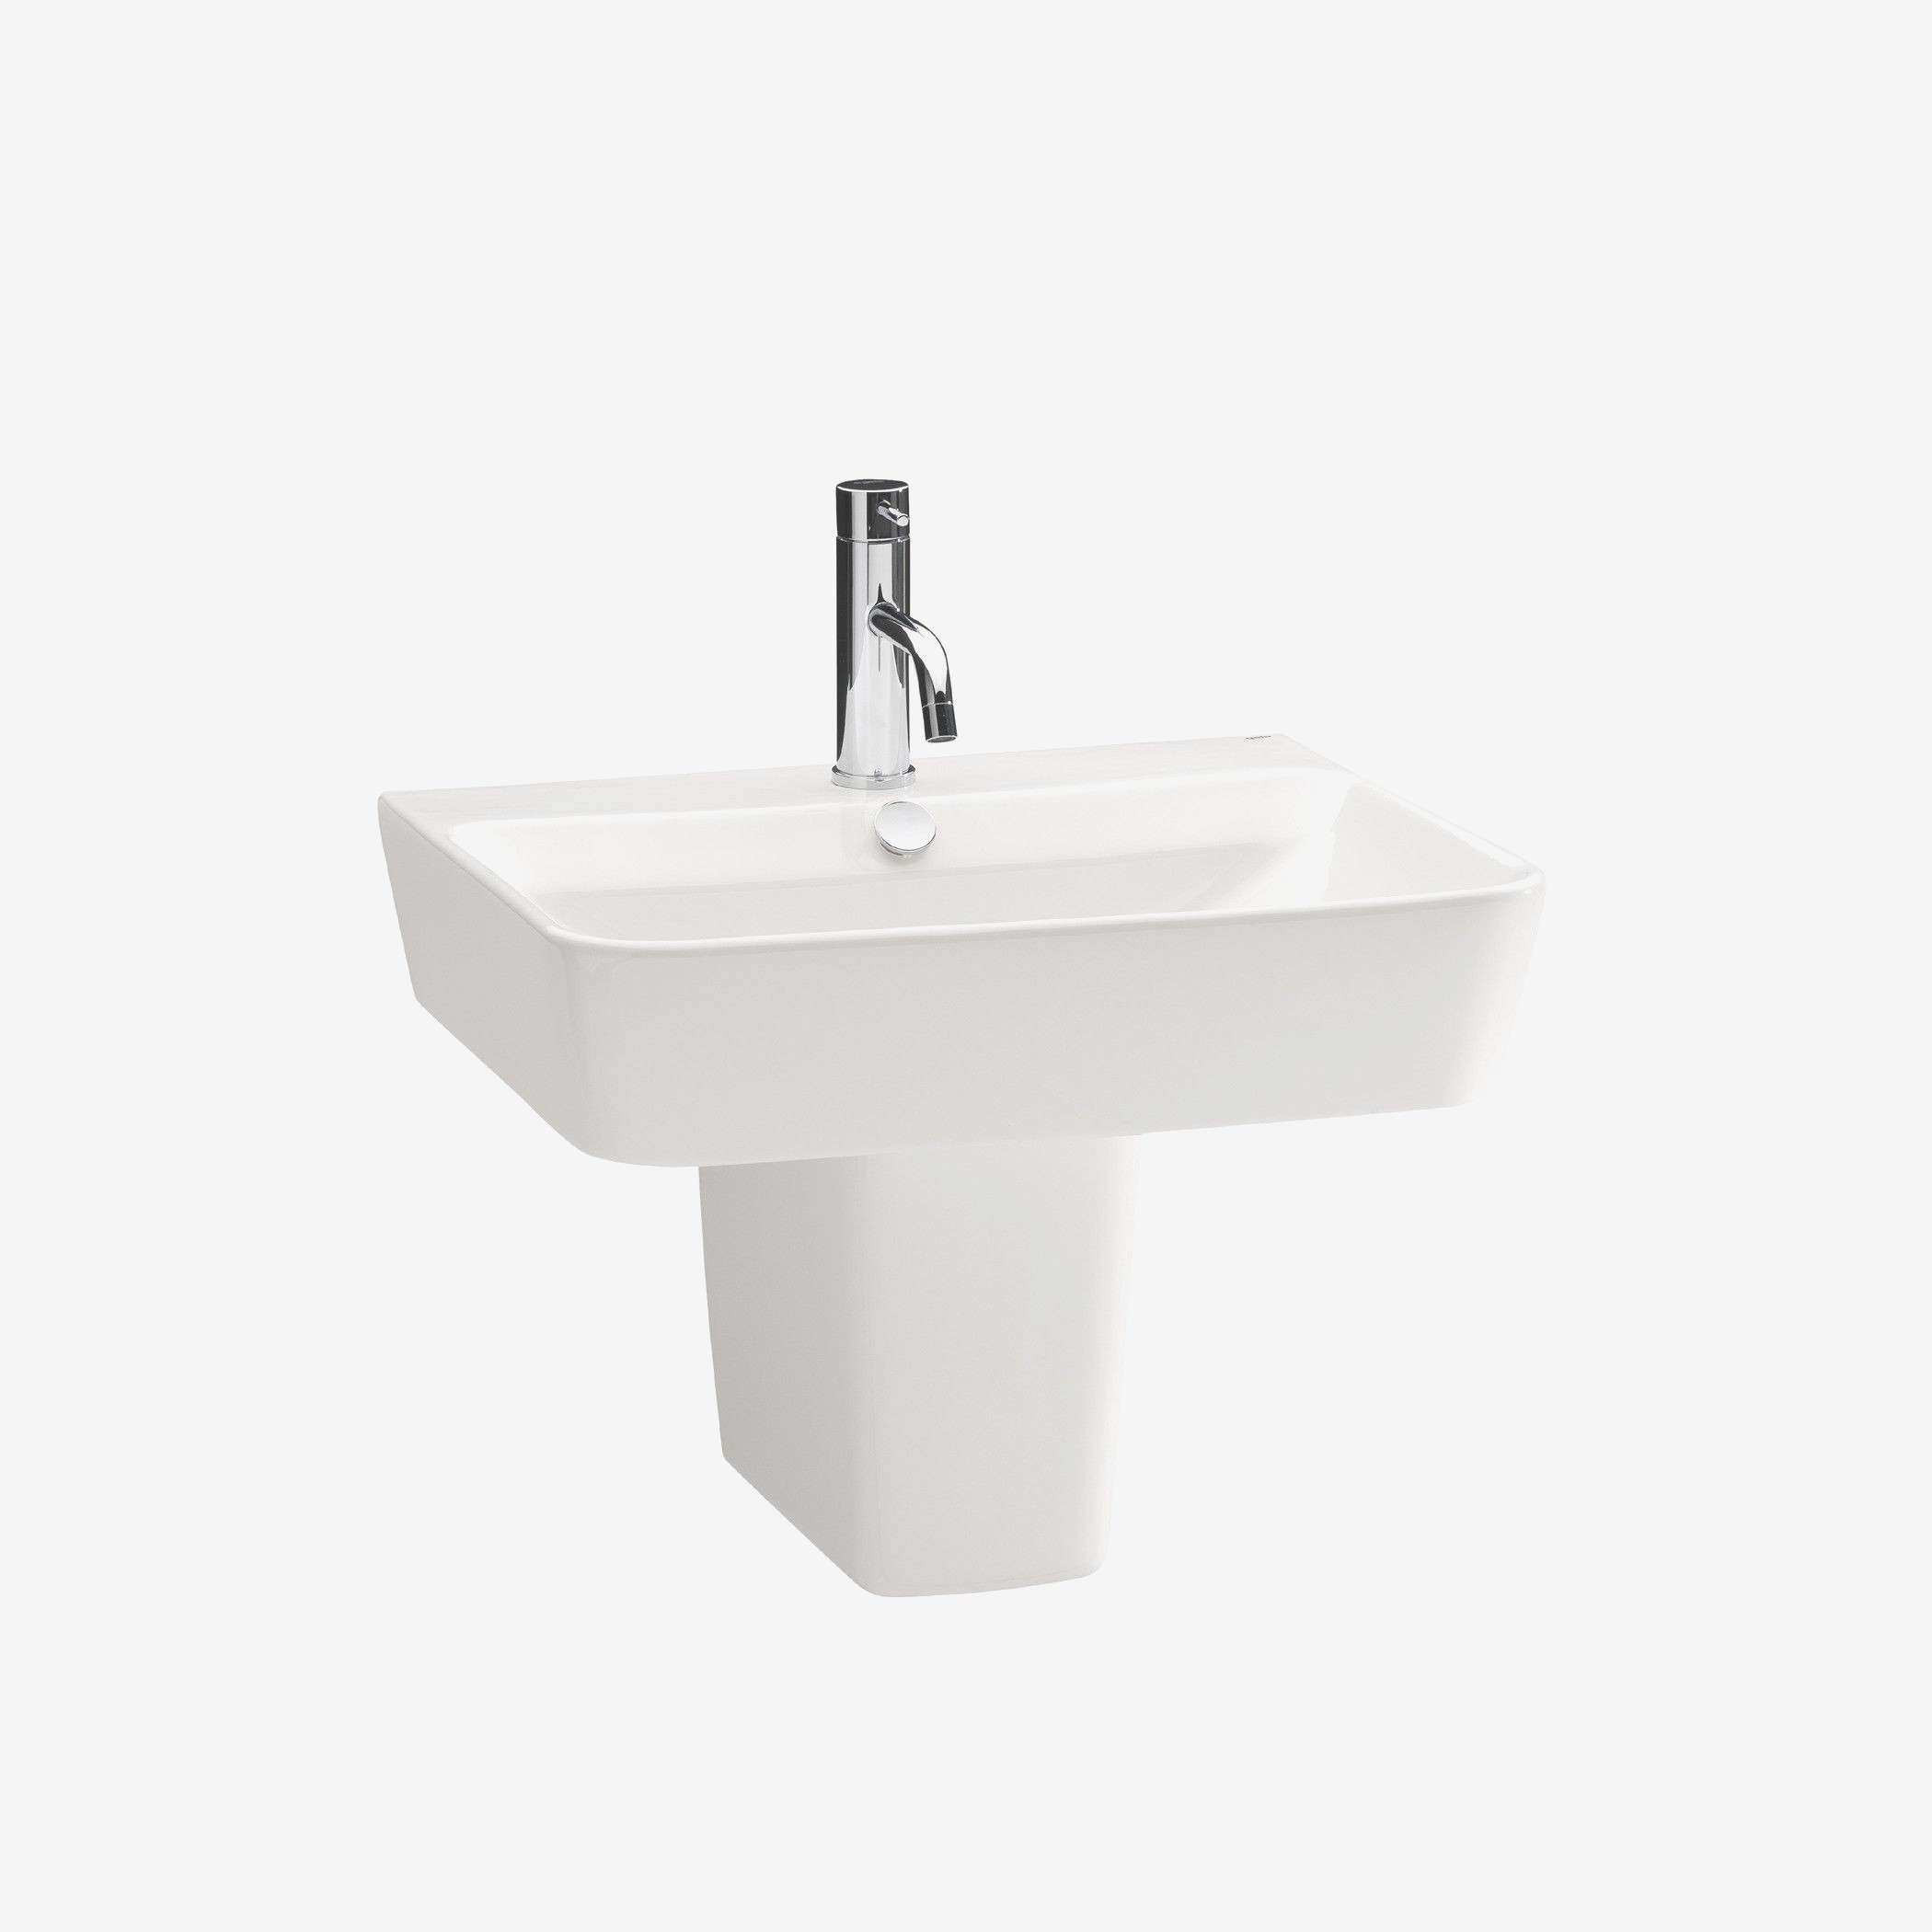 Best ideas about Bathroom Sink Smells . Save or Pin Fresh Inspirational Smell In Bathroom Sink Drain Now.